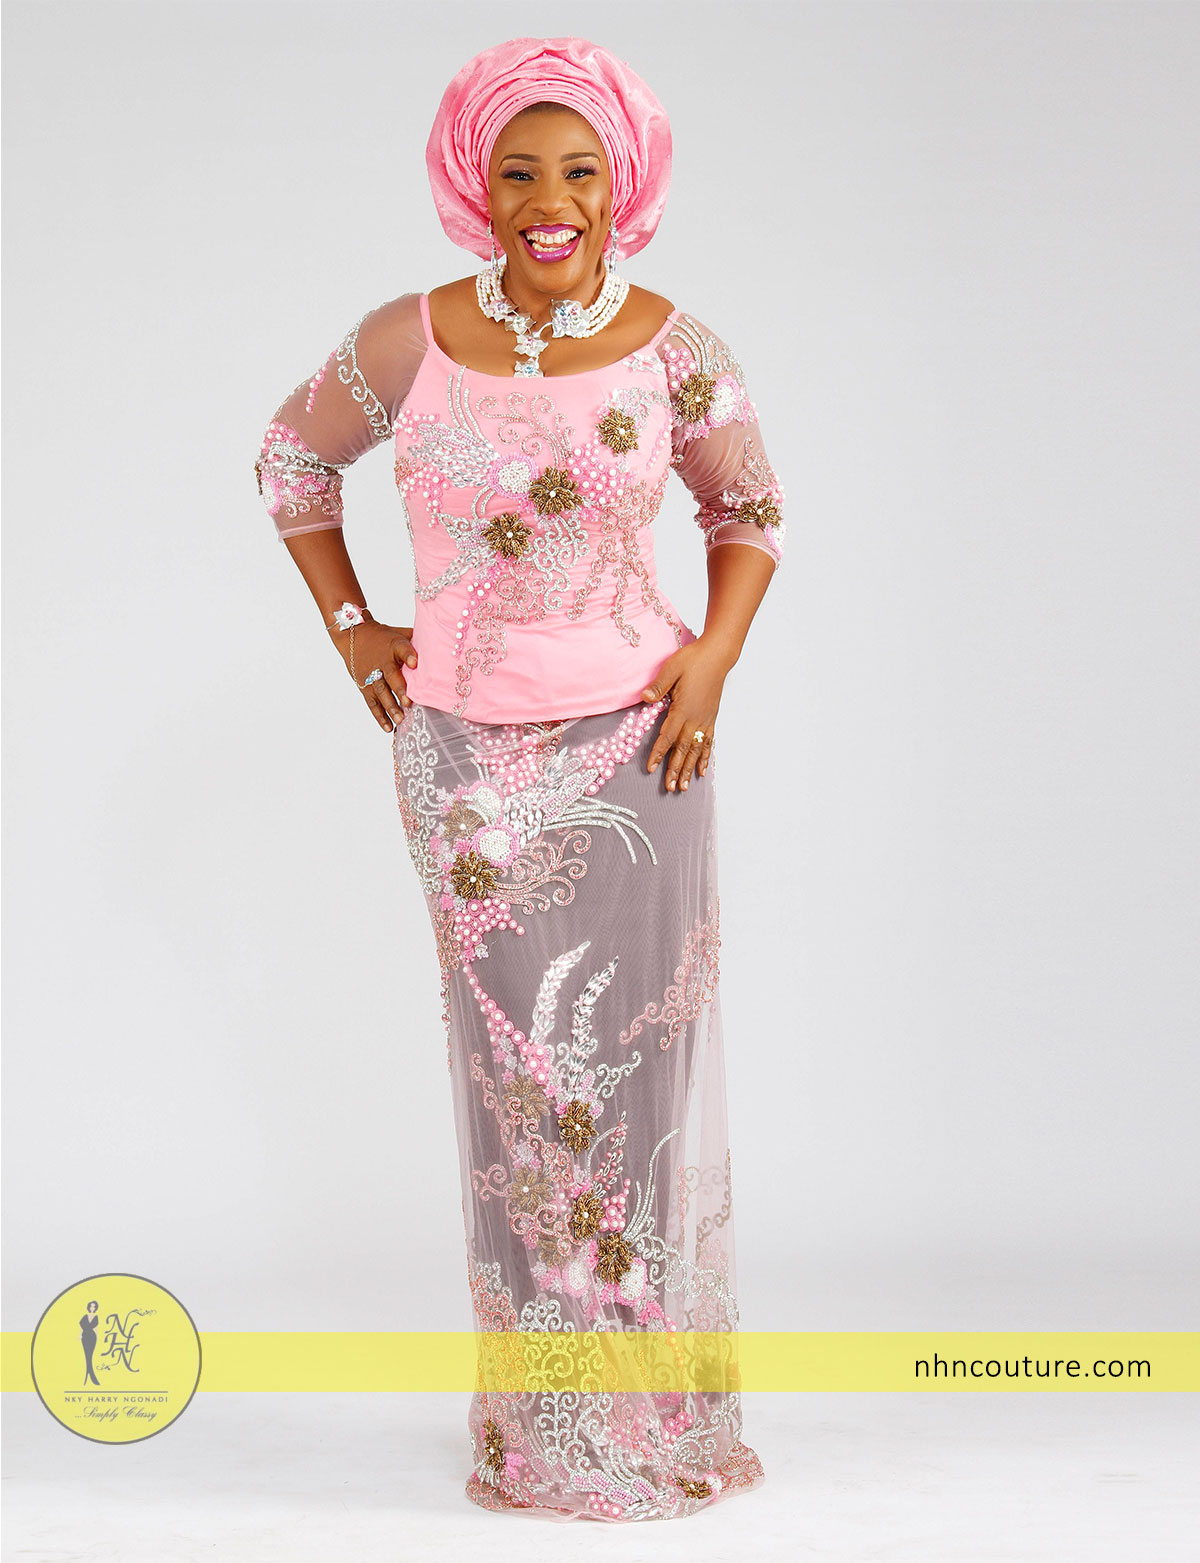 pink-sequined-fitted-top-and-wrapper_Nigerian-traditional-attire_asoebi_NHN-Couture_1